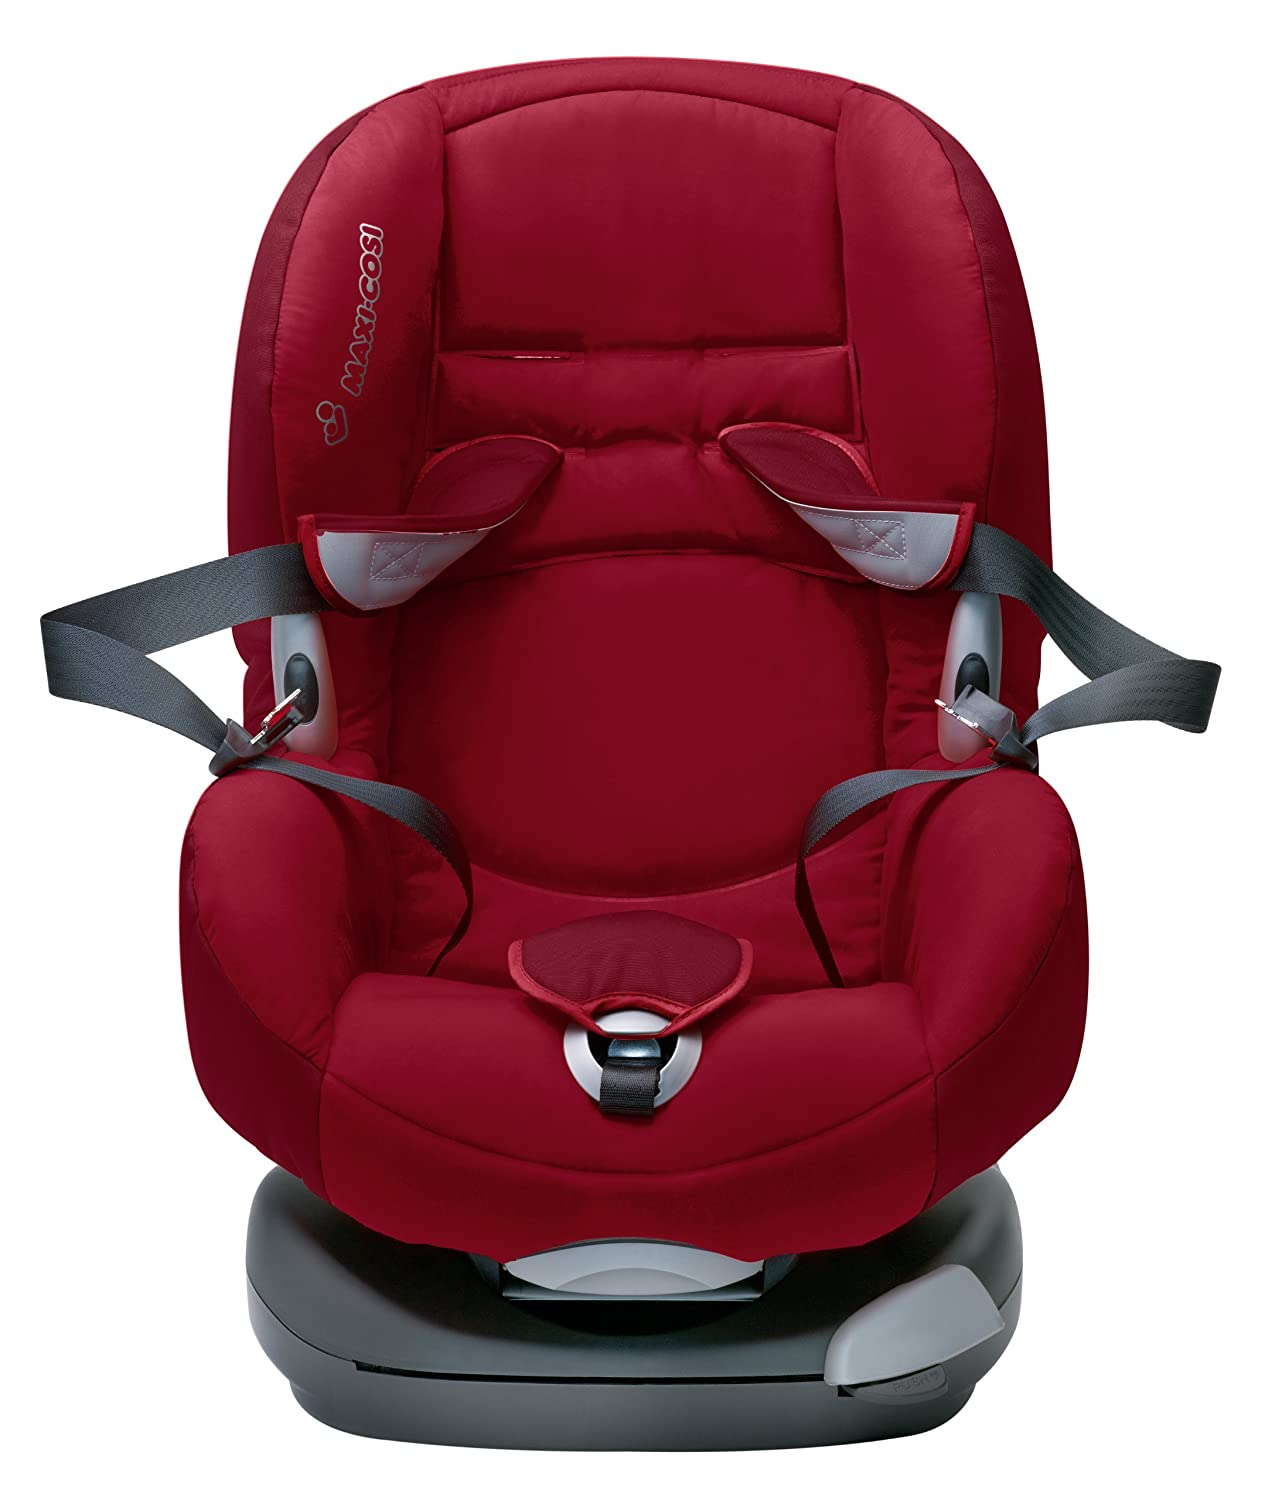 Amazon.com : Maxi-Cosi Priori XP Group 1 Car Seat (Shadow Red) : Baby